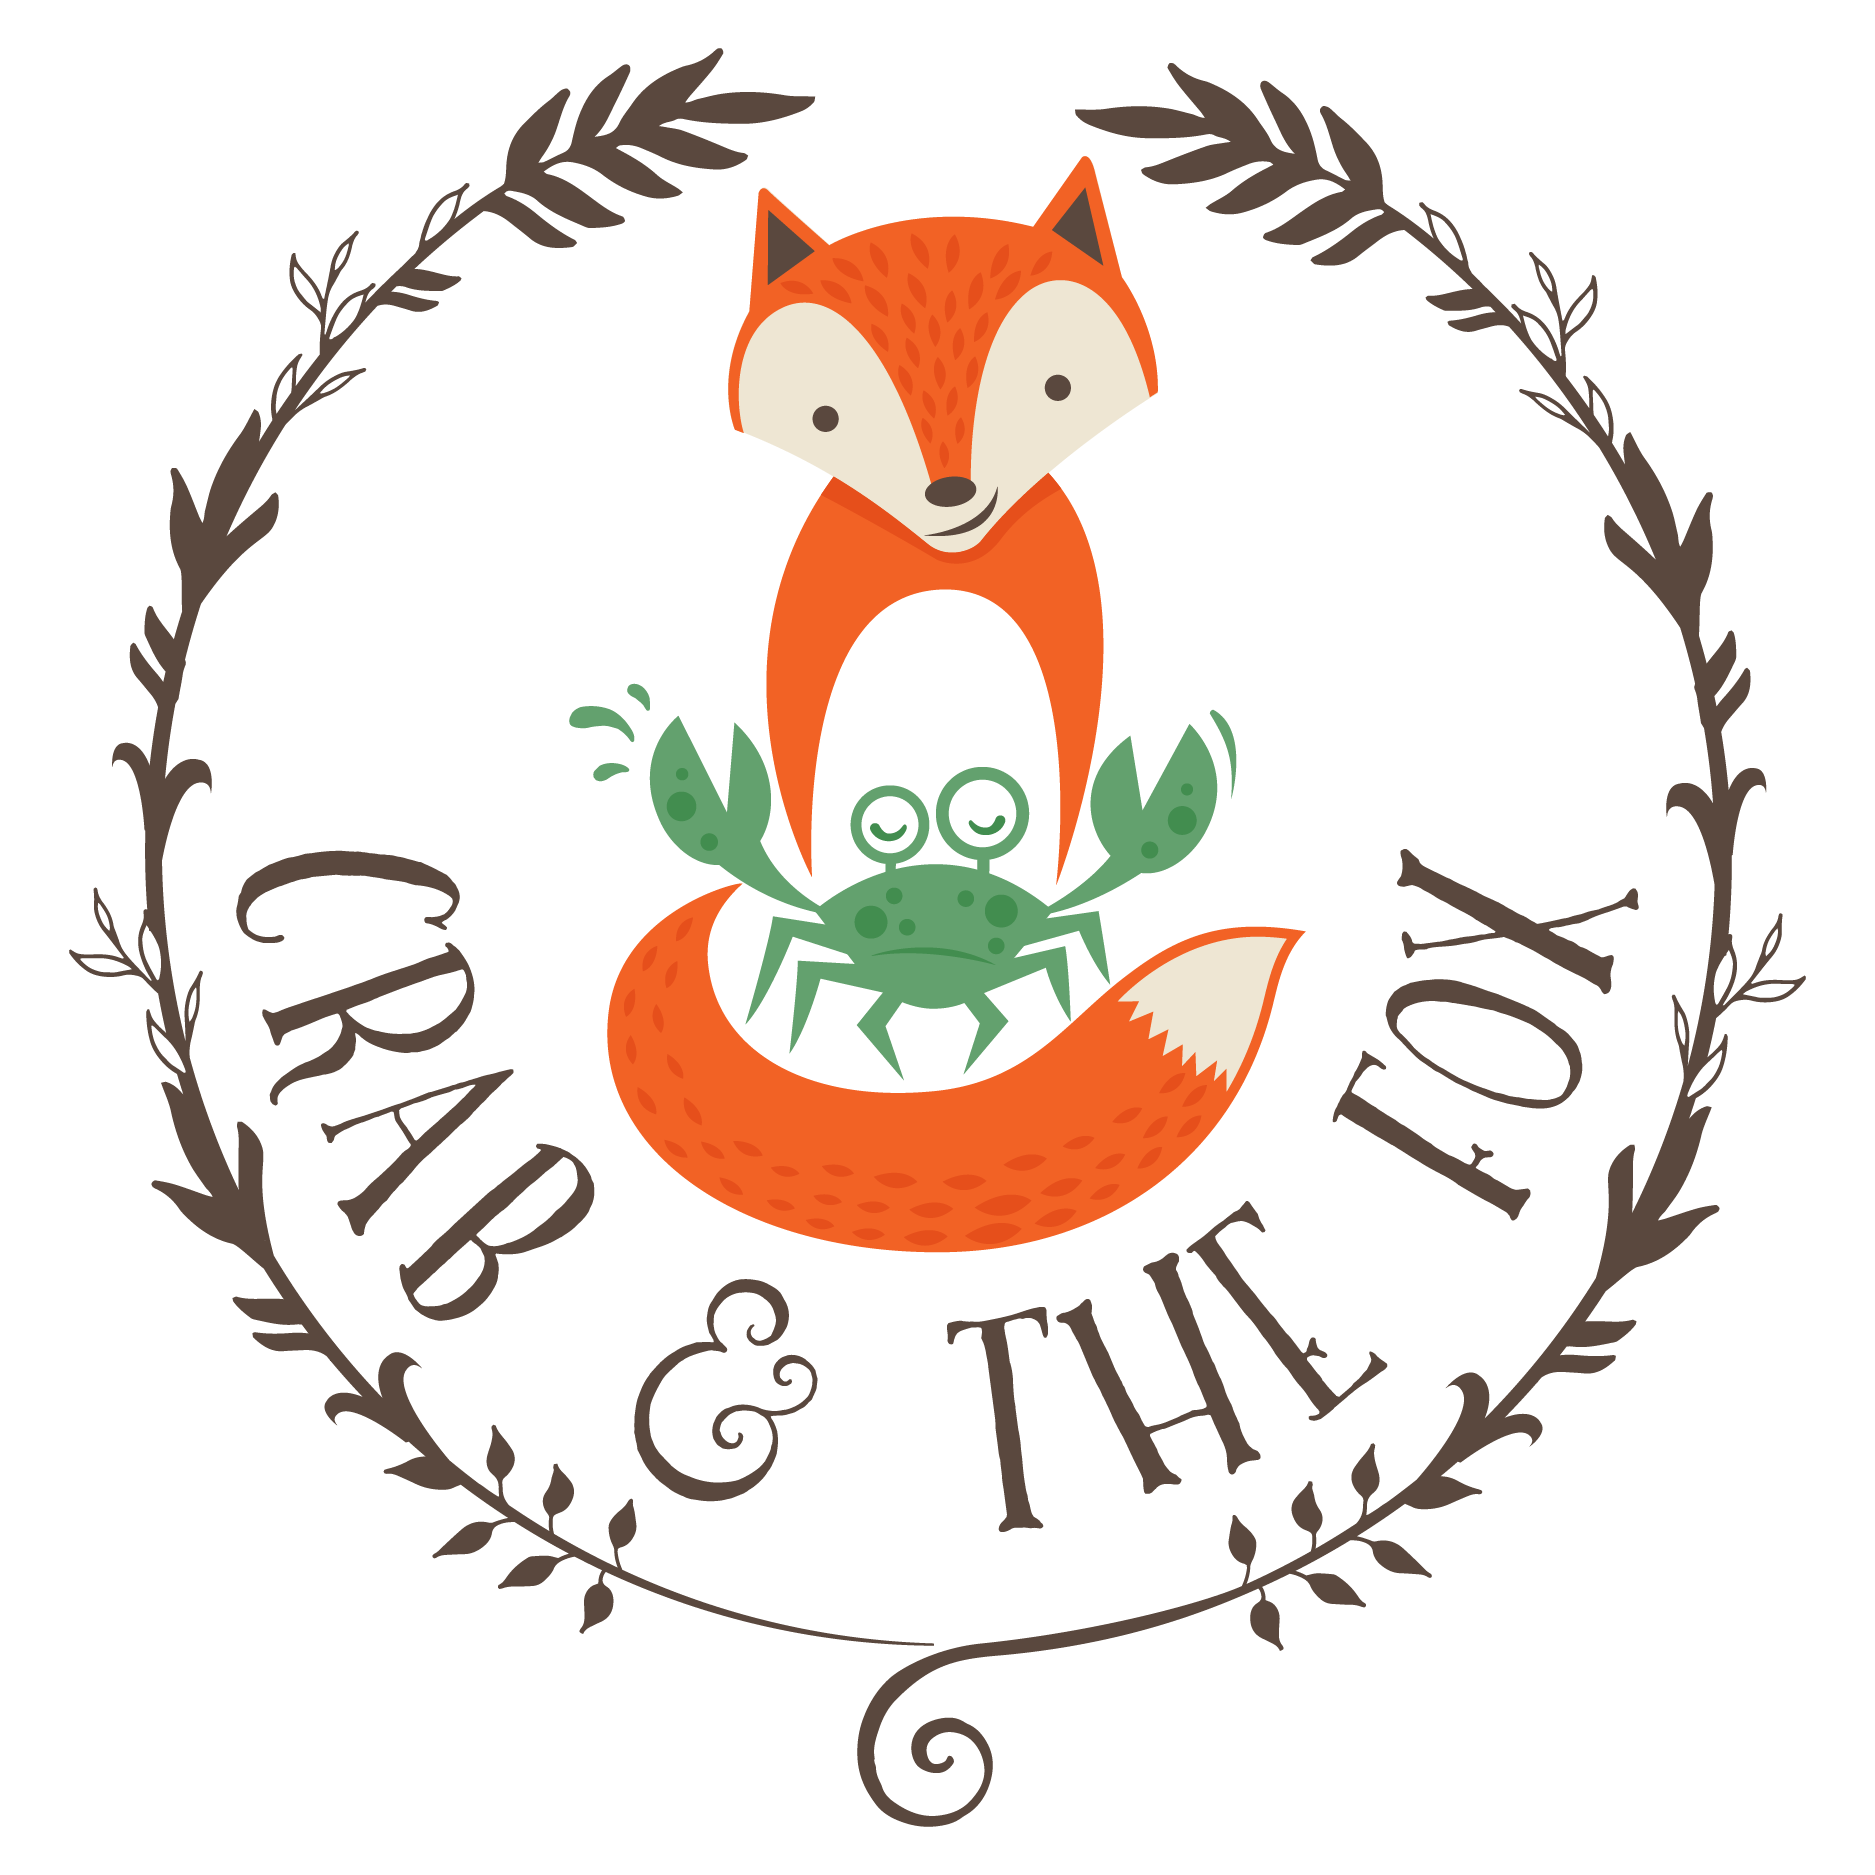 Crab and The Fox